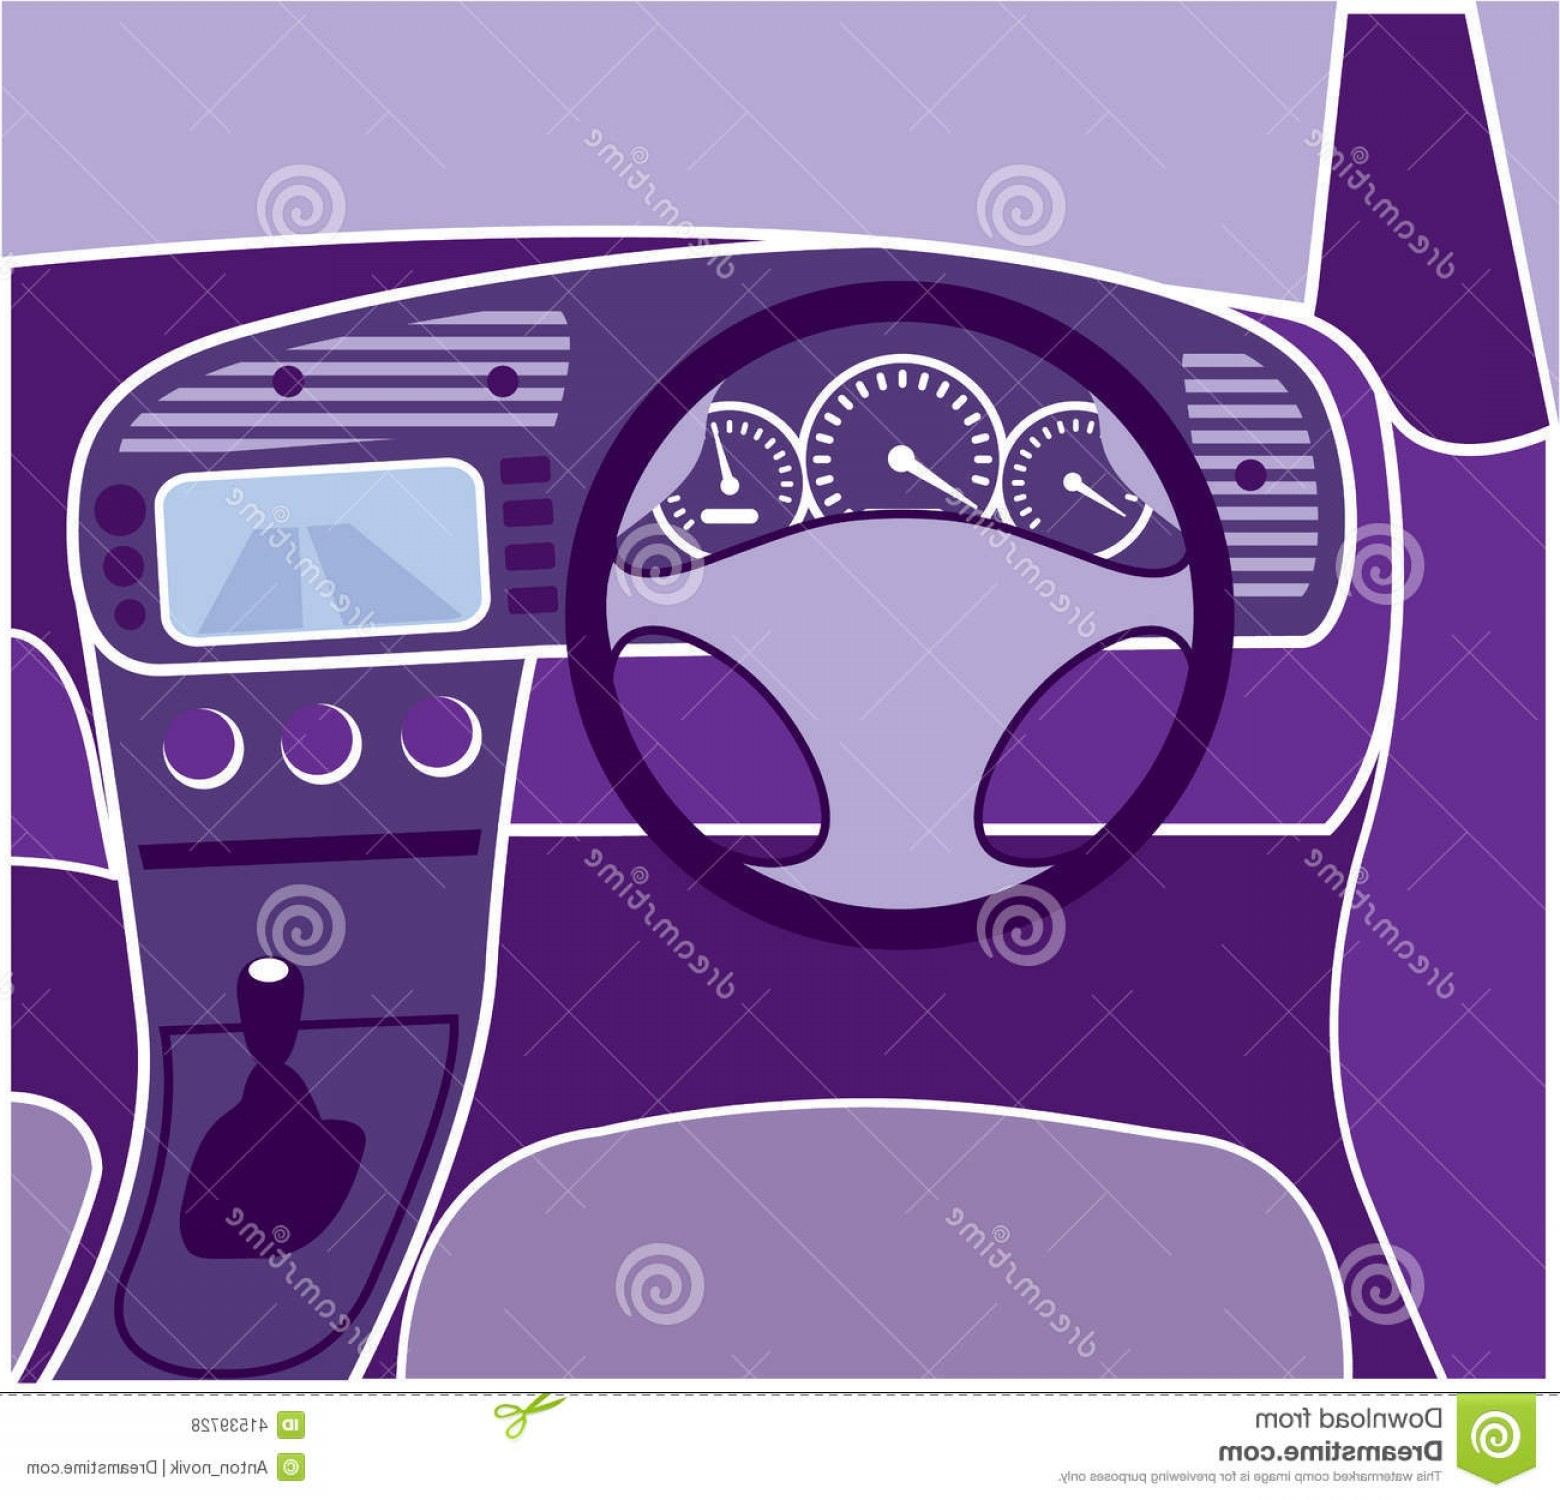 Struts For Cars Vector: Stock Illustration Car Interior Vector Illustration Clip Art Simplistic Image